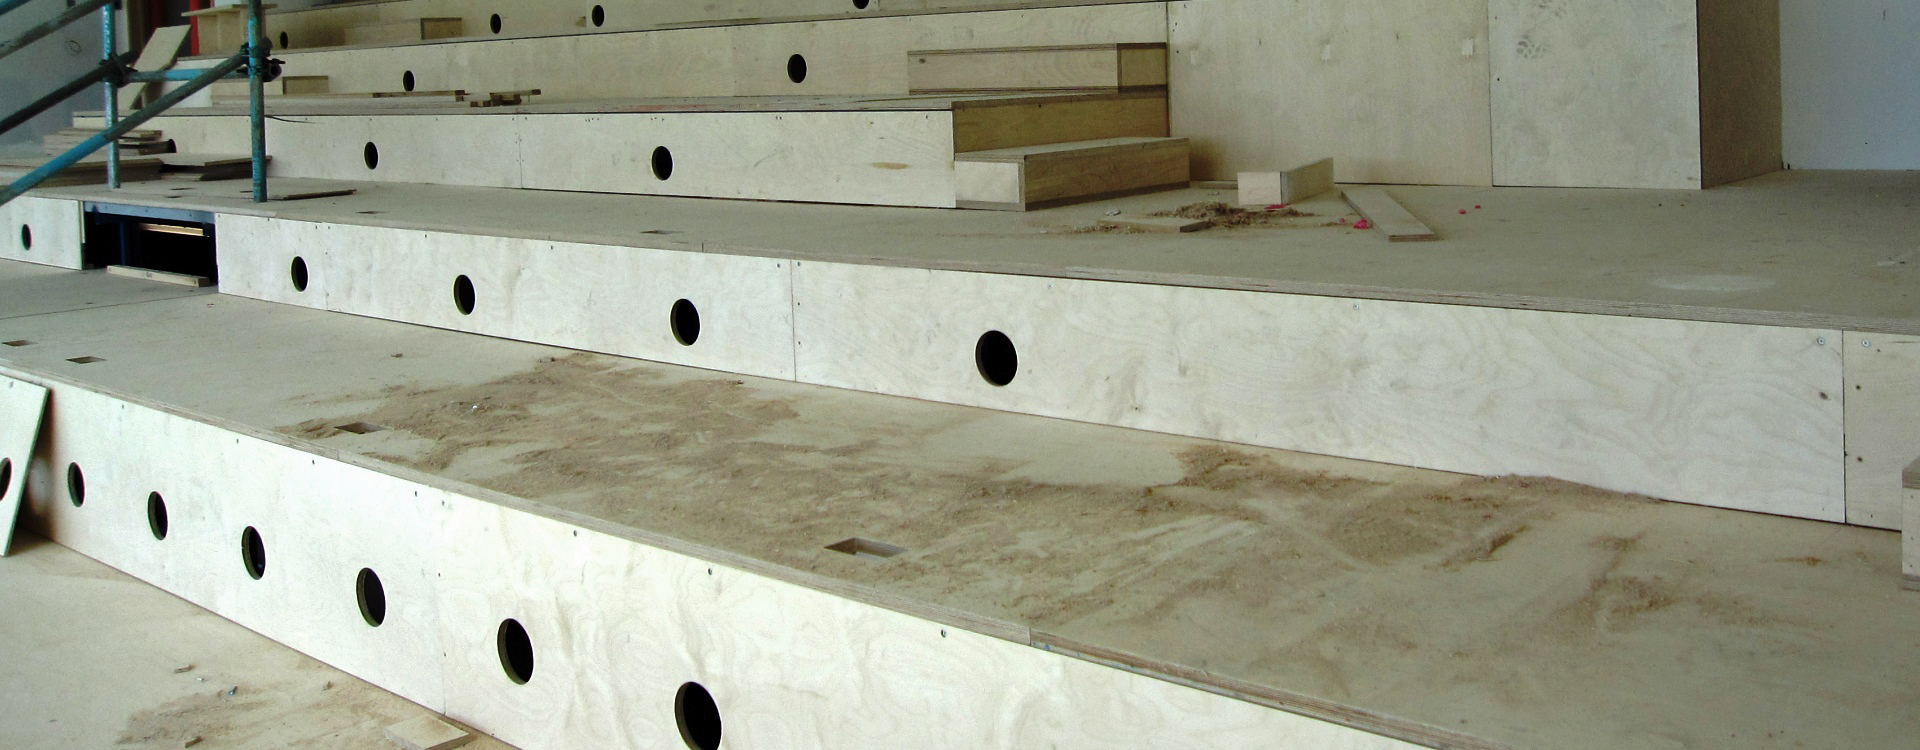 Structural Tiering & Flooring Systems